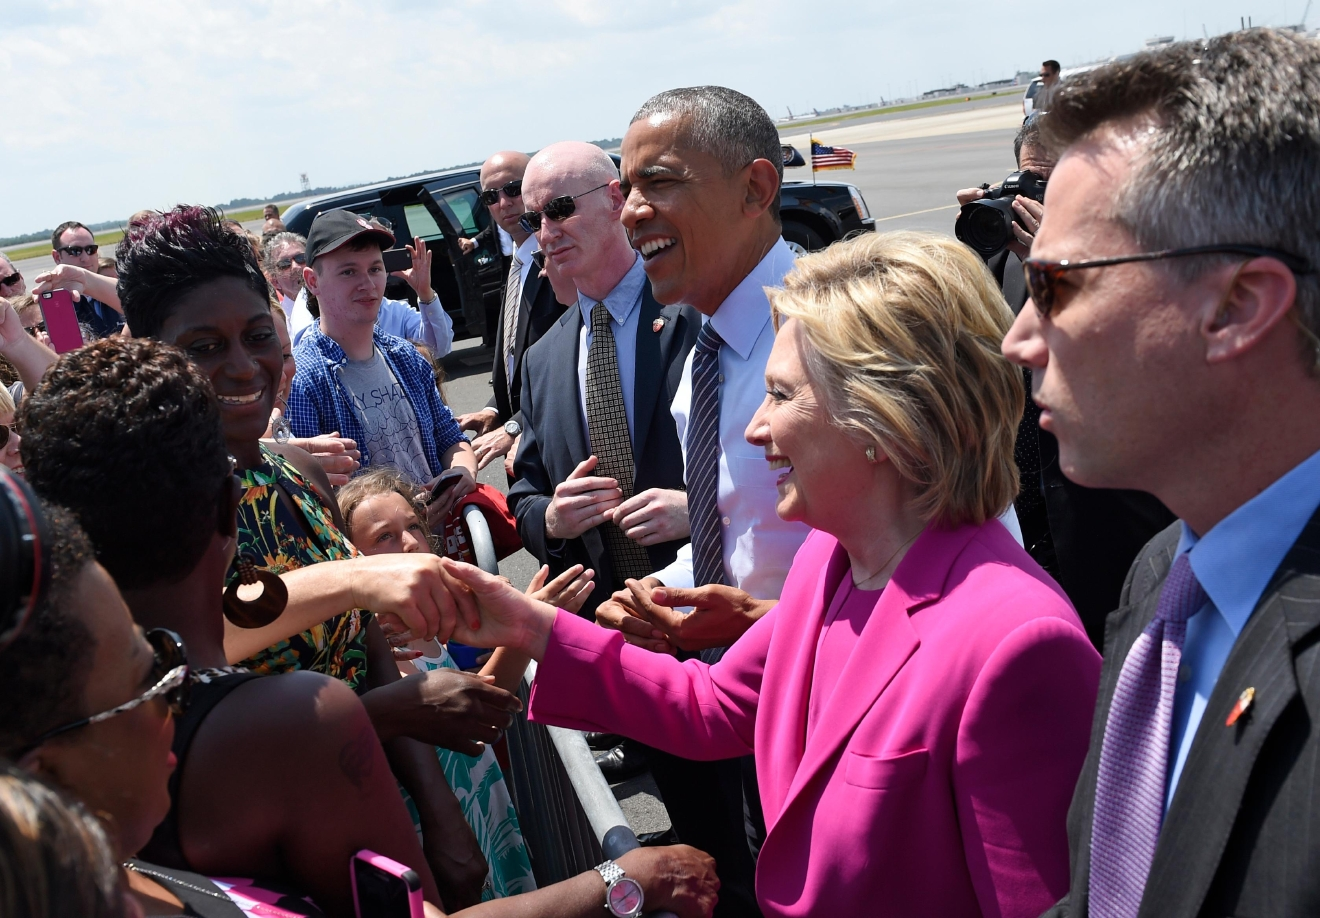 President Barack Obama and Democratic presidential candidate Hillary Clinton greet people on the tarmac after arriving at North Carolina Air National Guard Base in Charlotte, N.C., Tuesday, July 5, 2016. Obama is spending the afternoon campaigning for Clinton. (AP Photo/Susan Walsh)